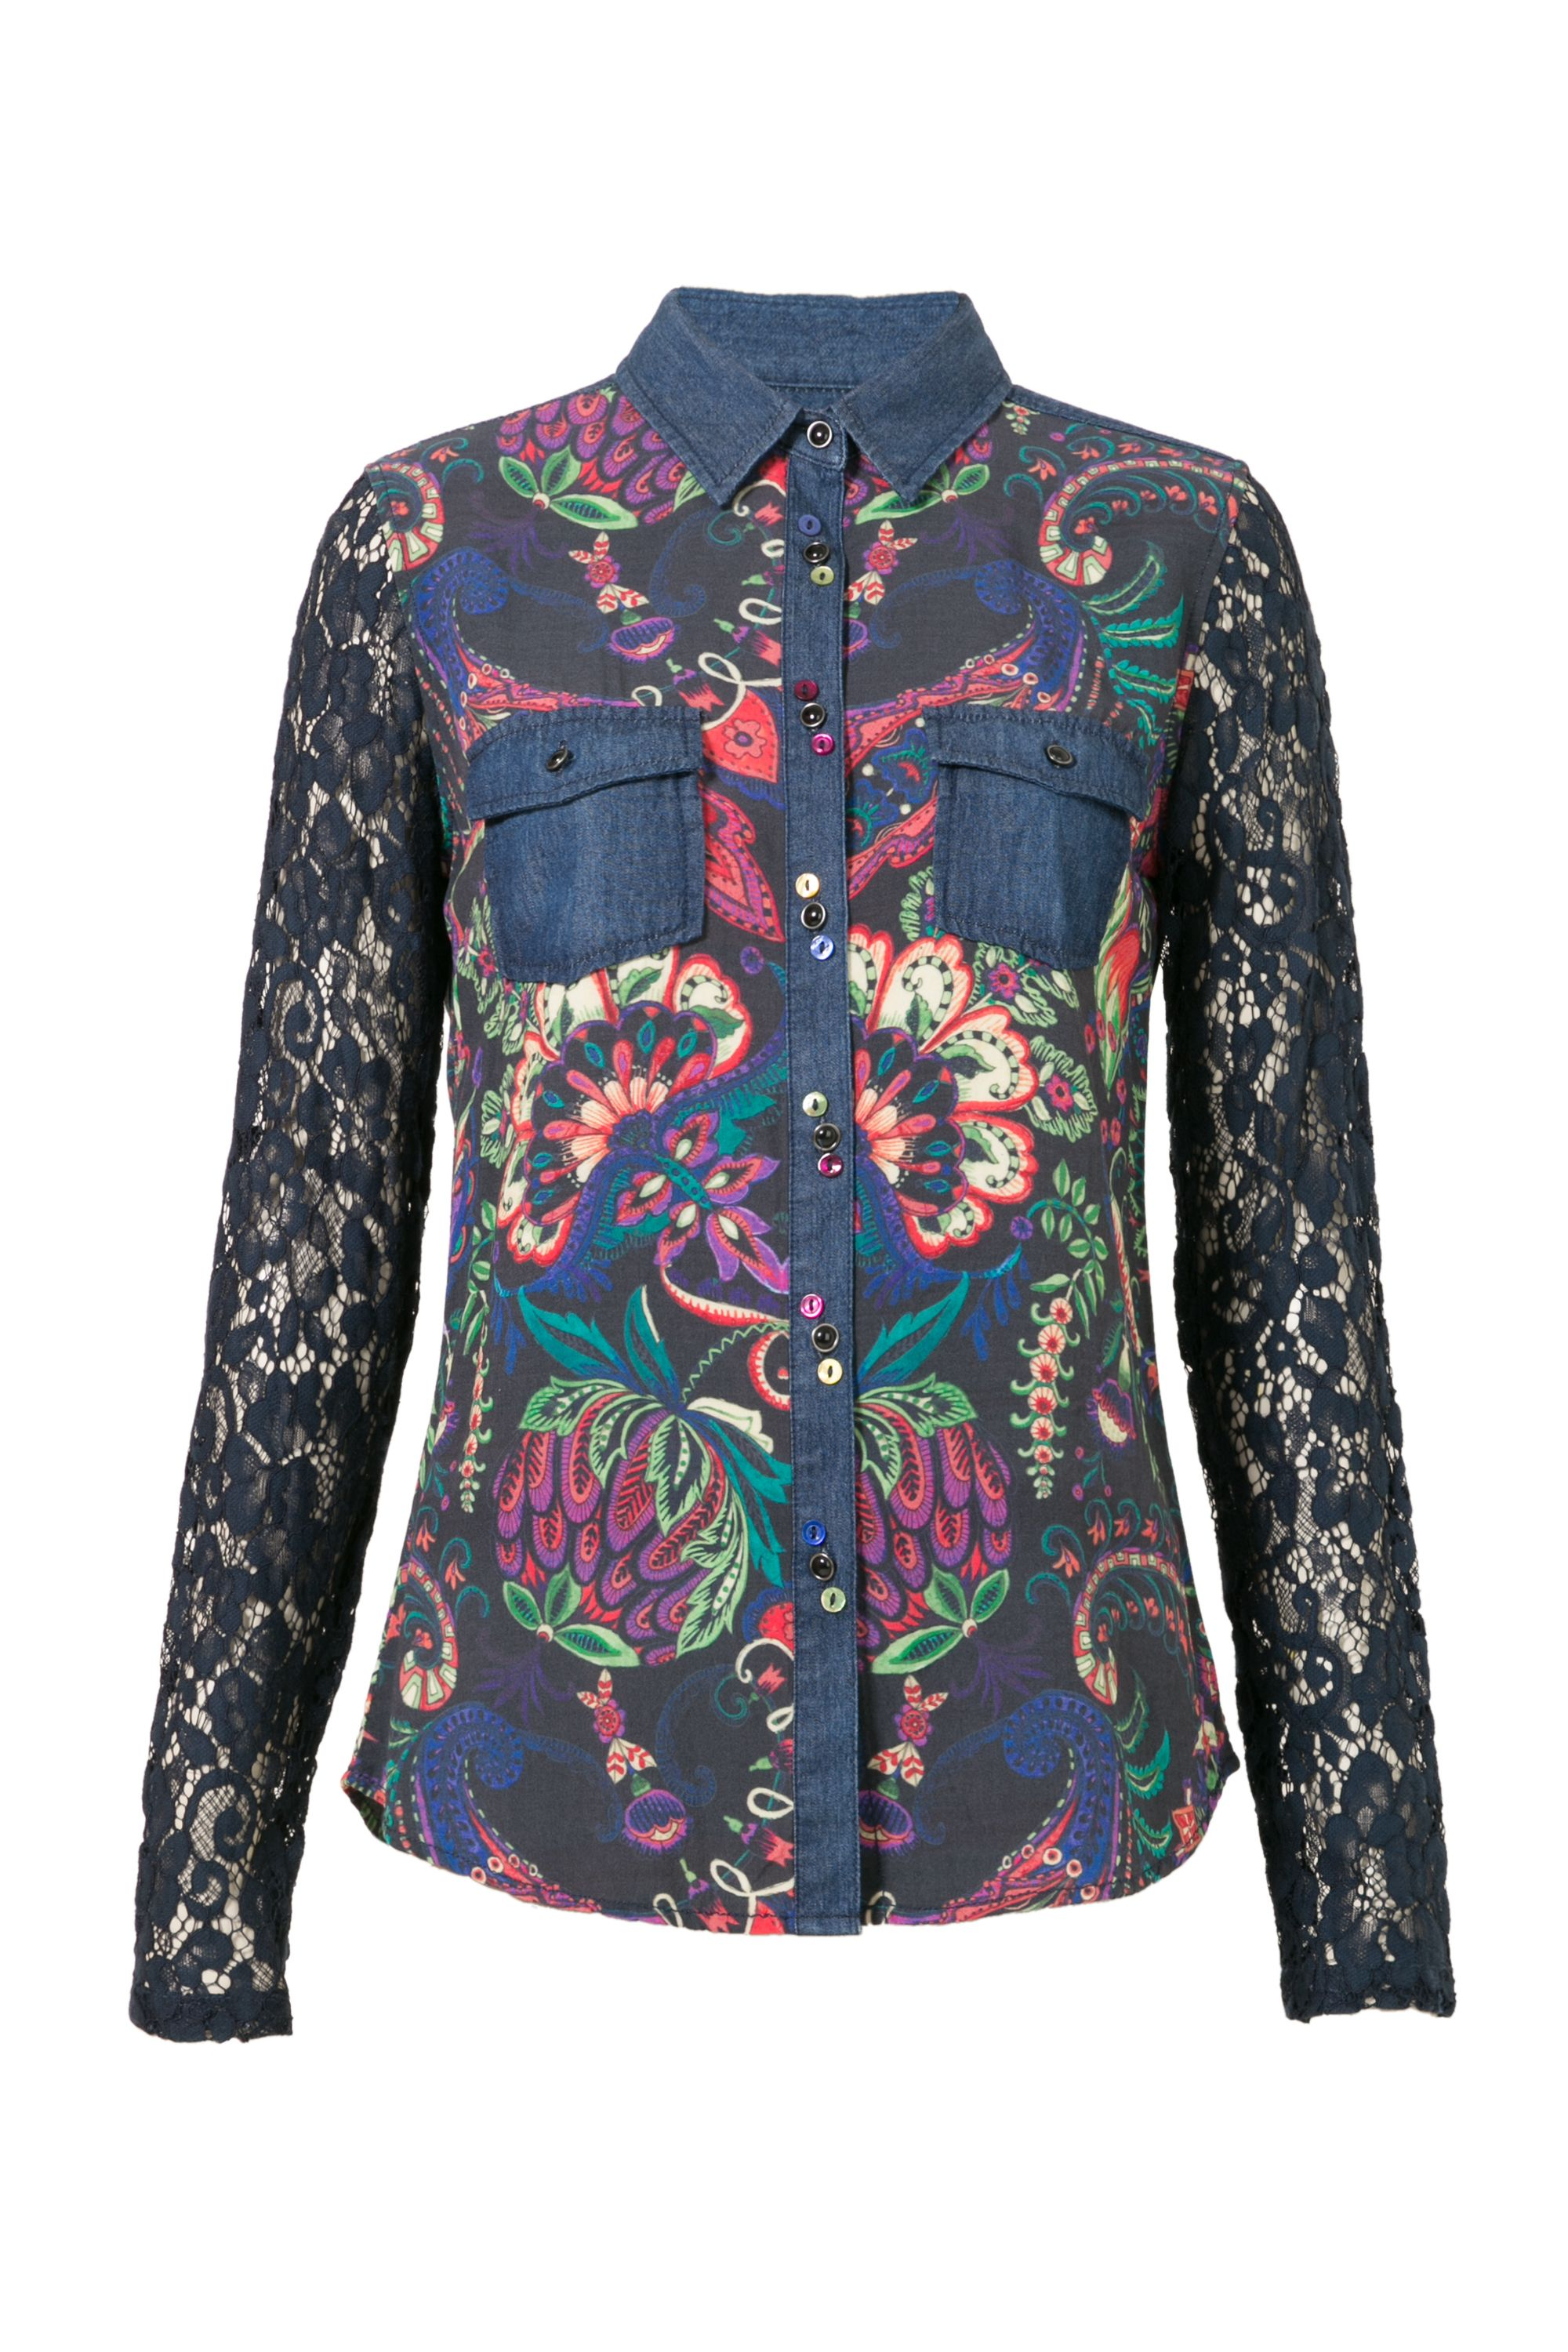 Desigual Shirt Lace, Blue